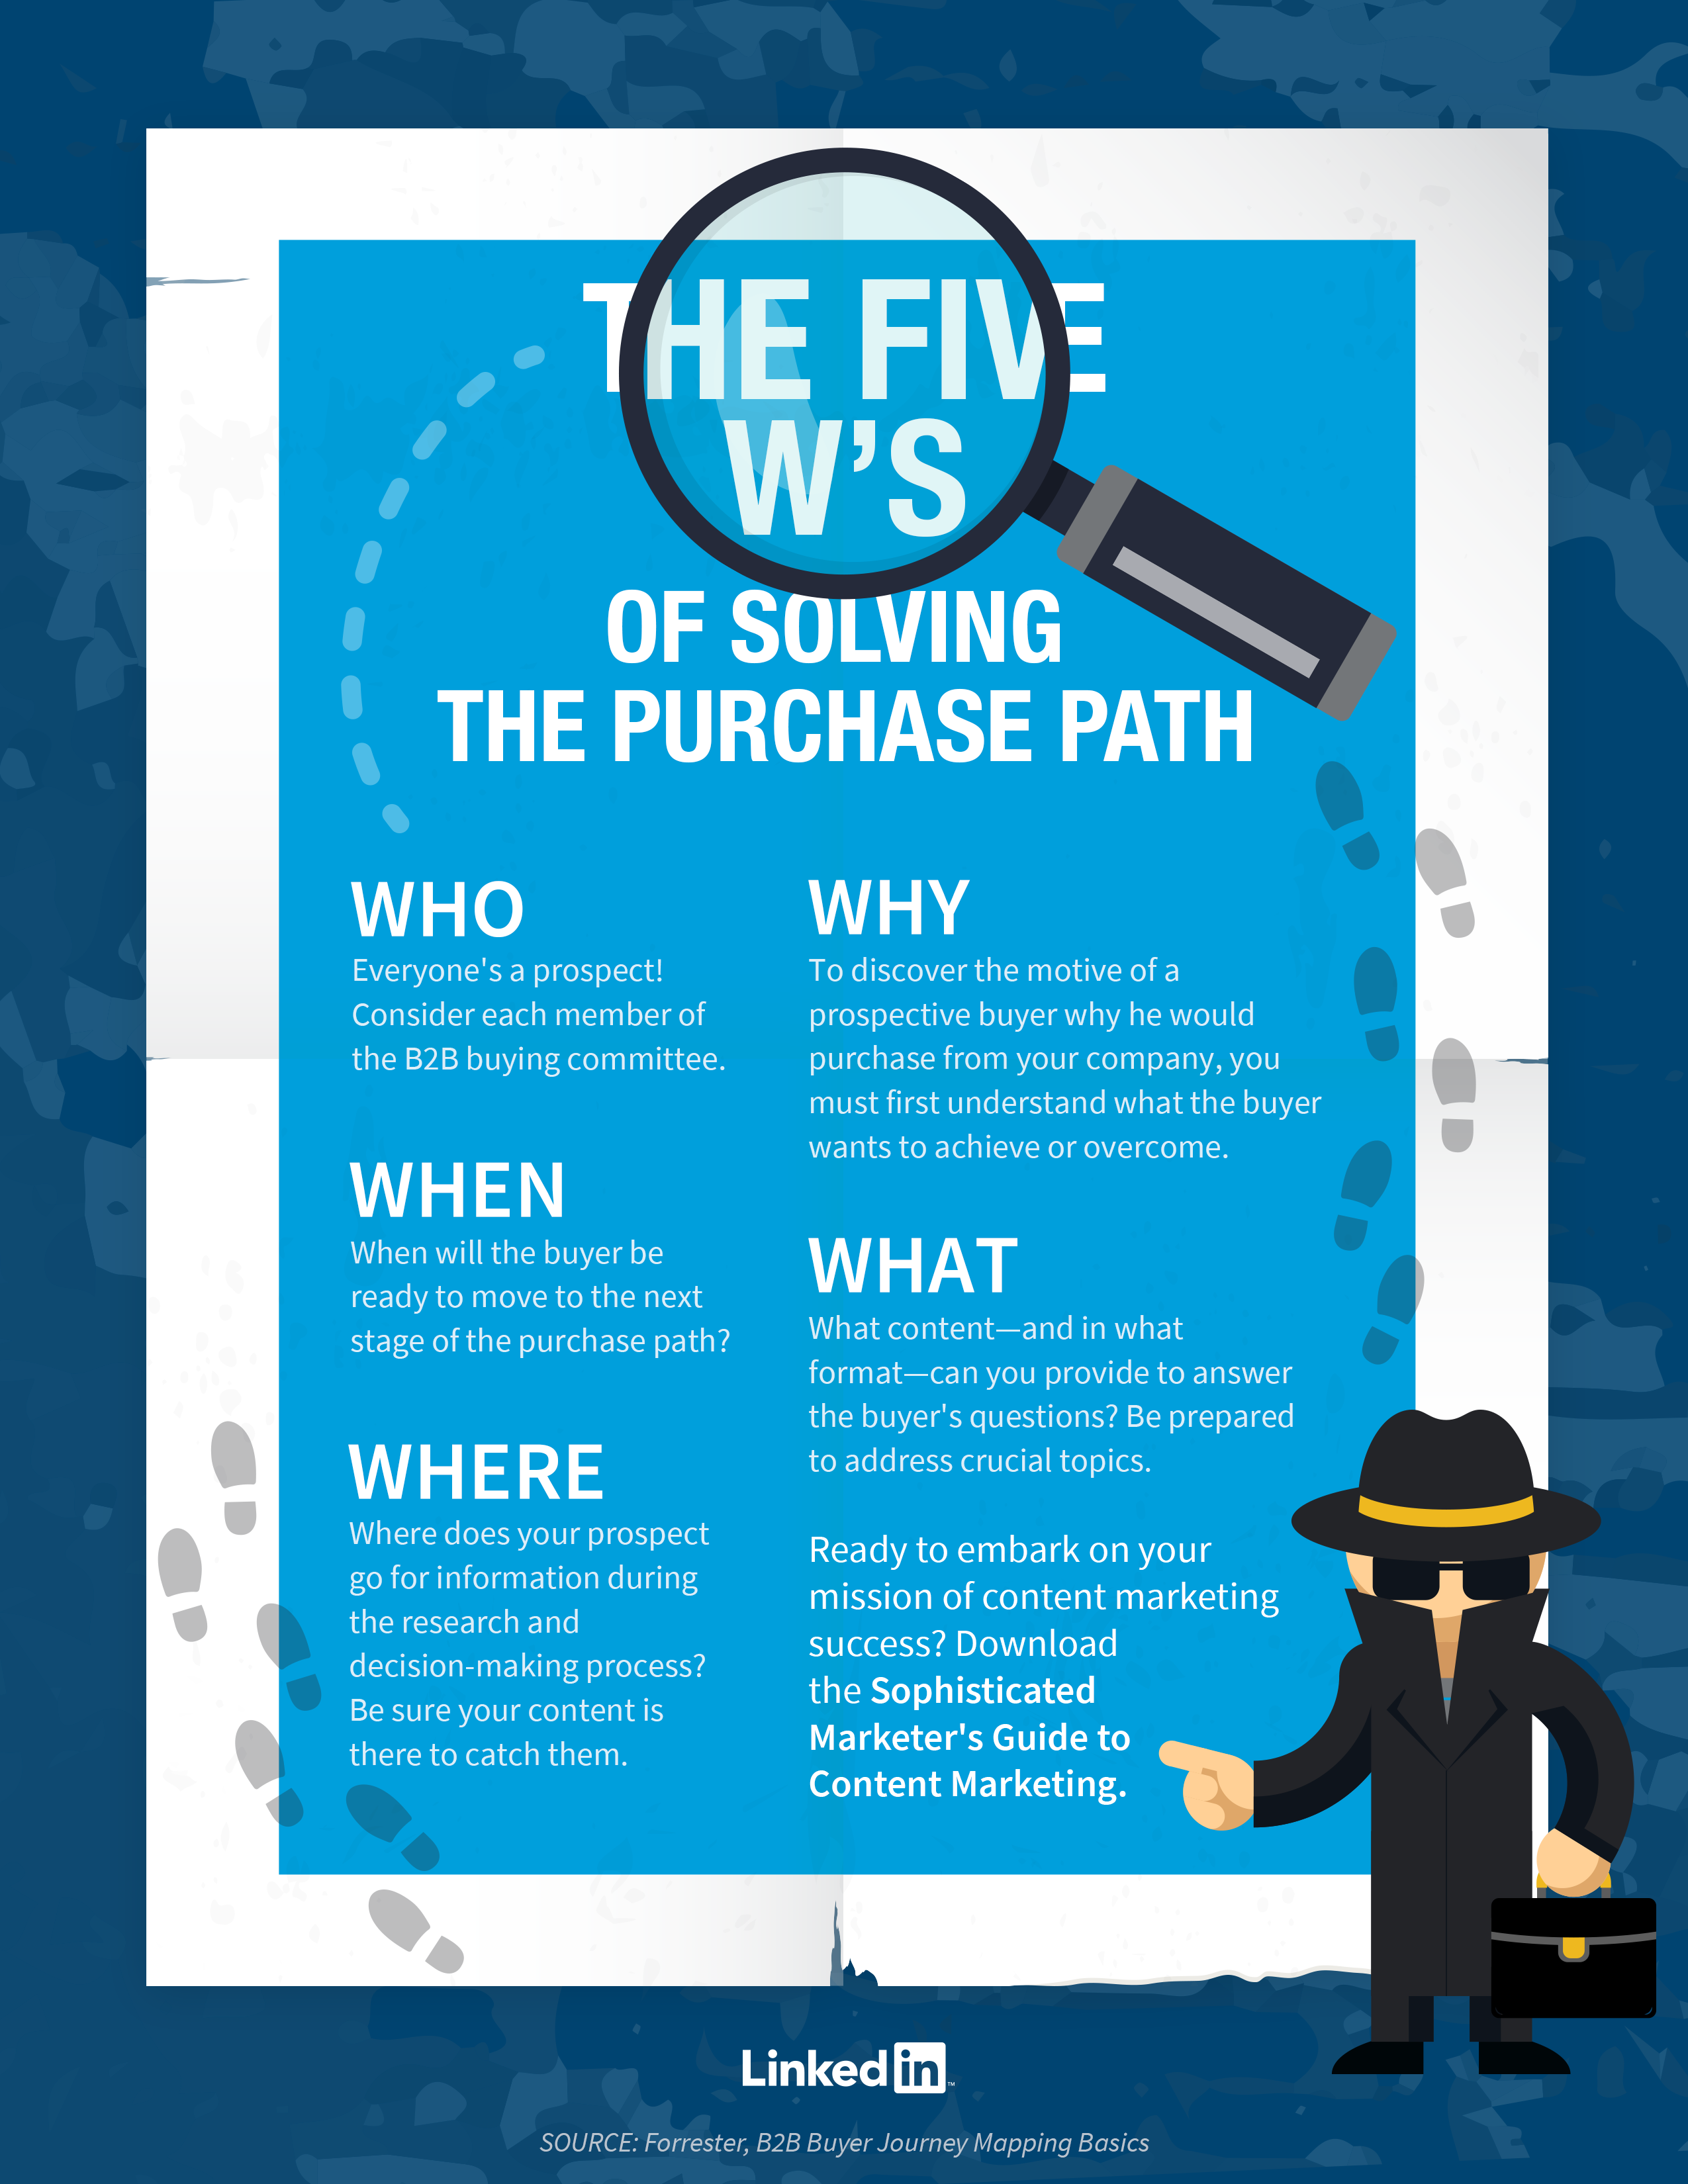 The 5 Ws of Solving the B2B Purchase Path